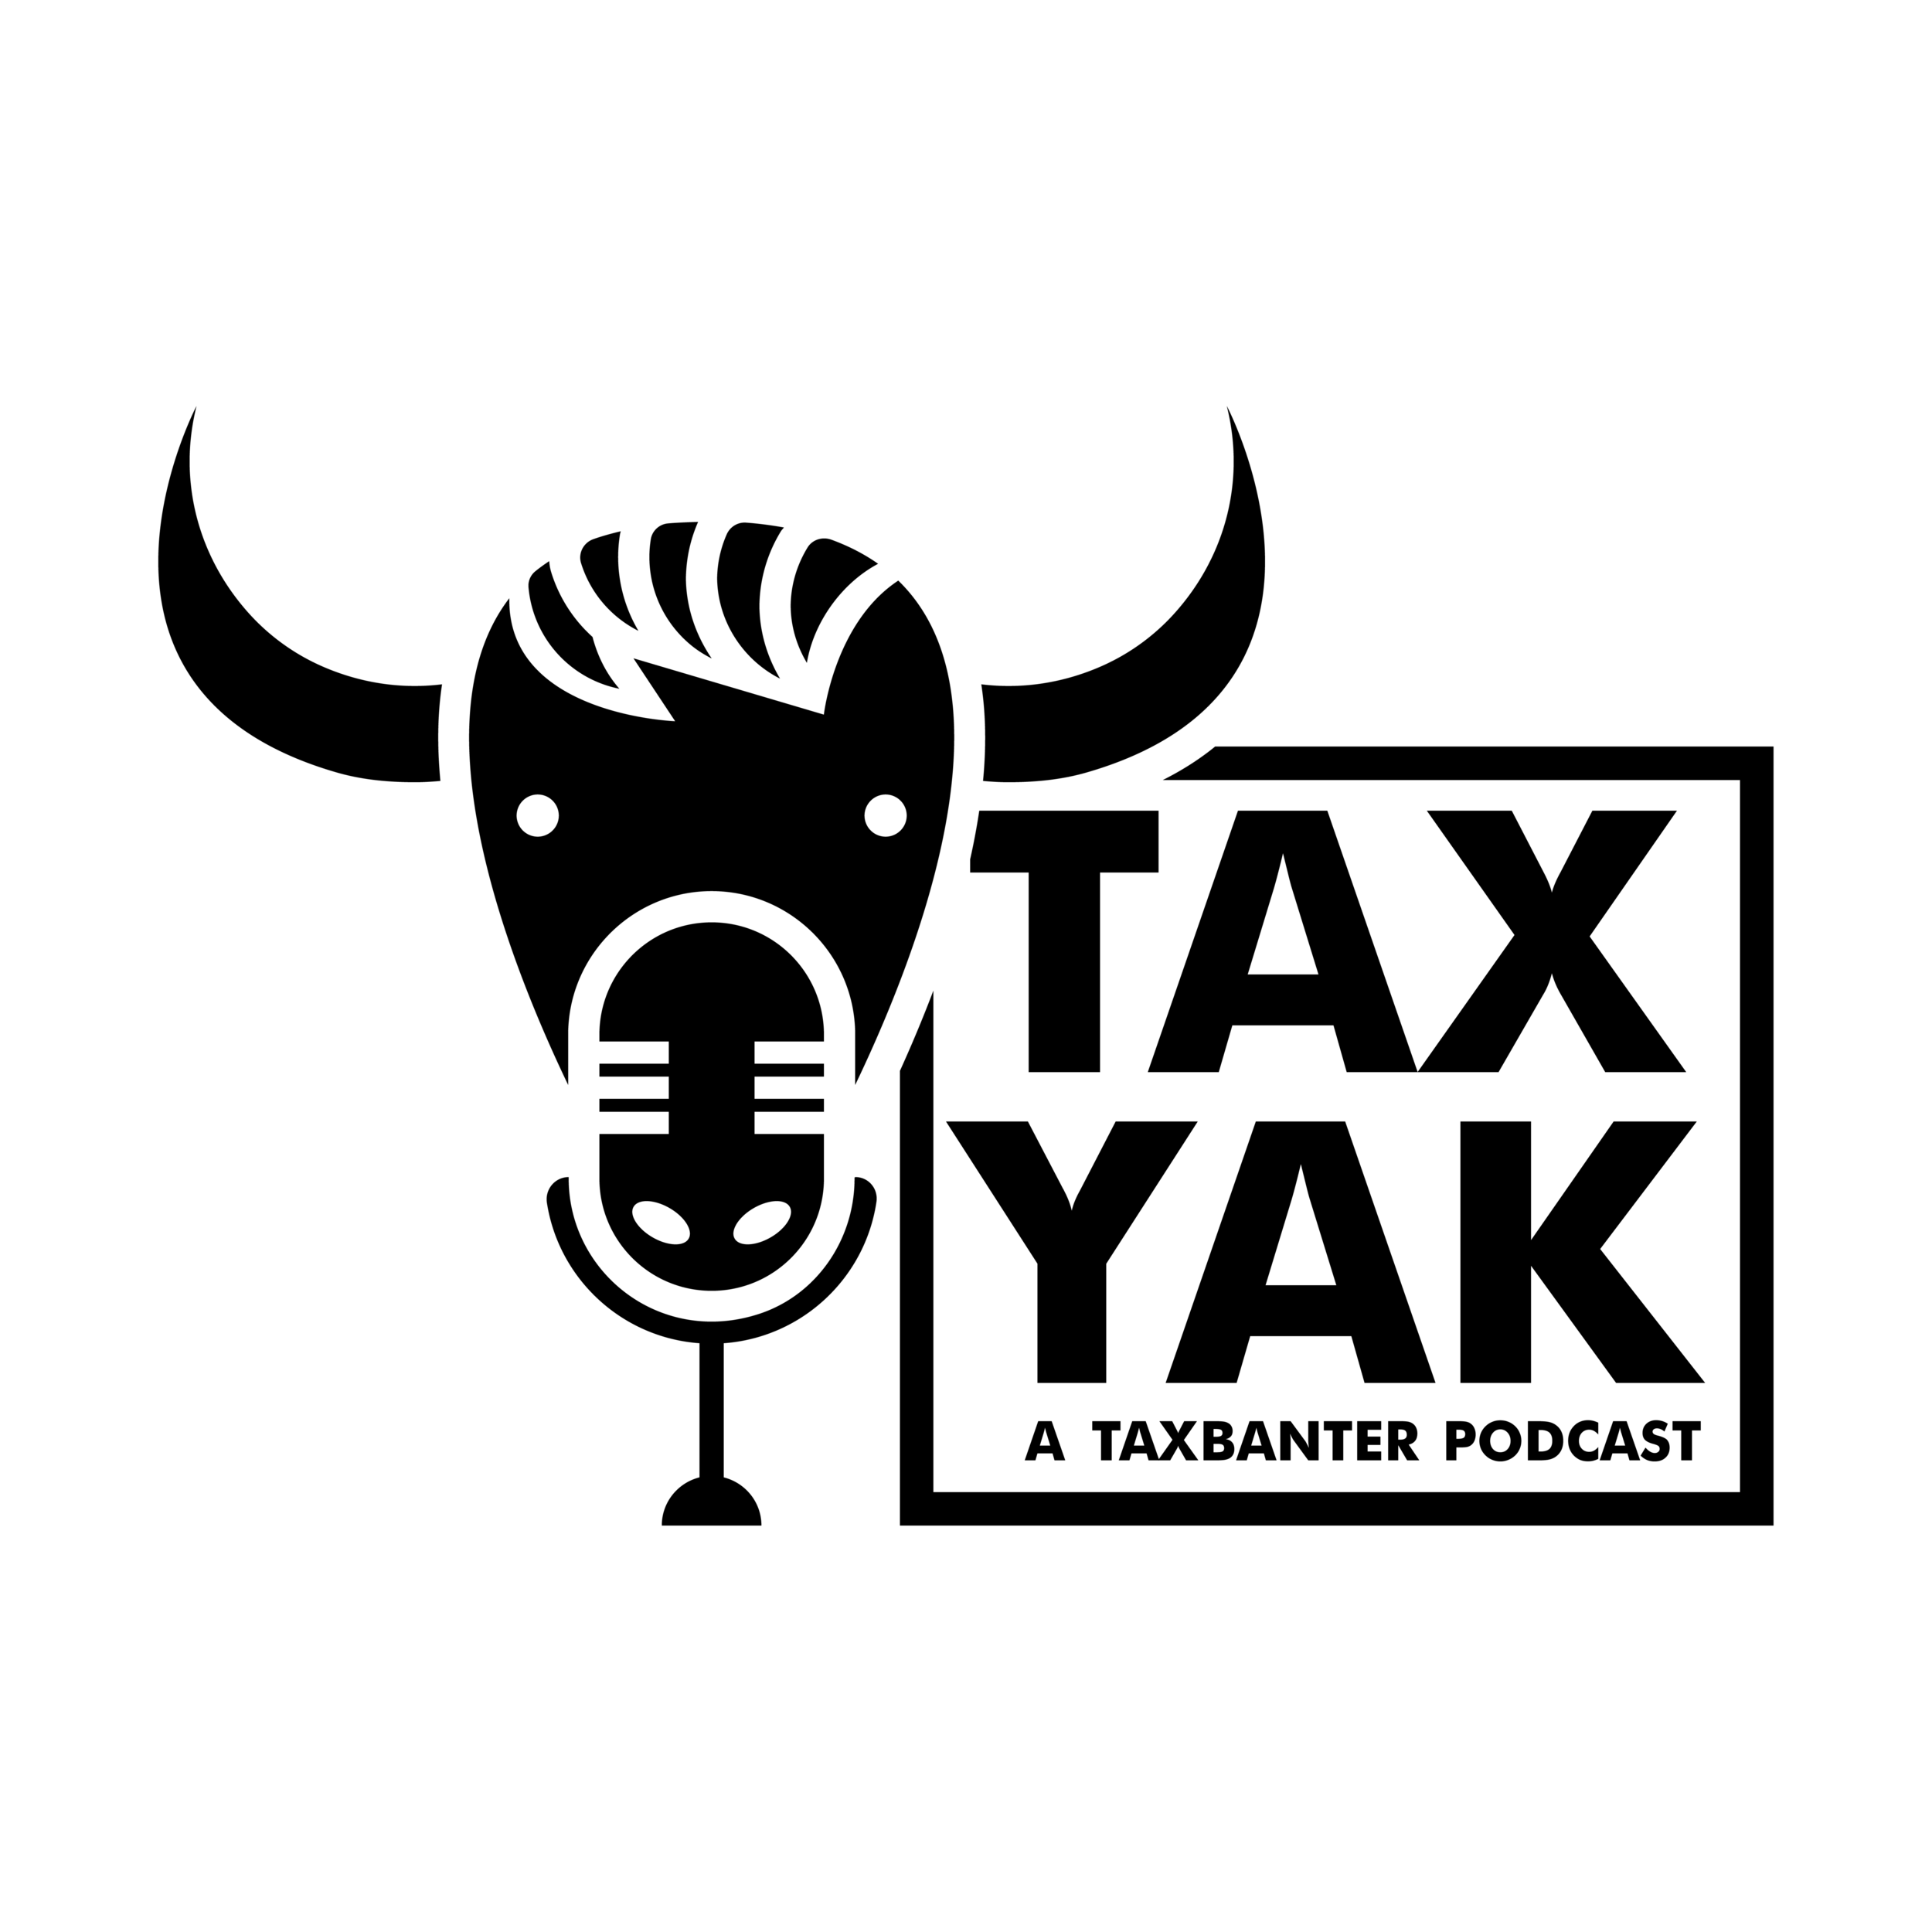 The name provided an excellent opportunity to blend its two elements together providing the podcast with a cheeky vibe and showcasing their fun loving attitude towards their show'smain topic. - Yak and microphone combination.